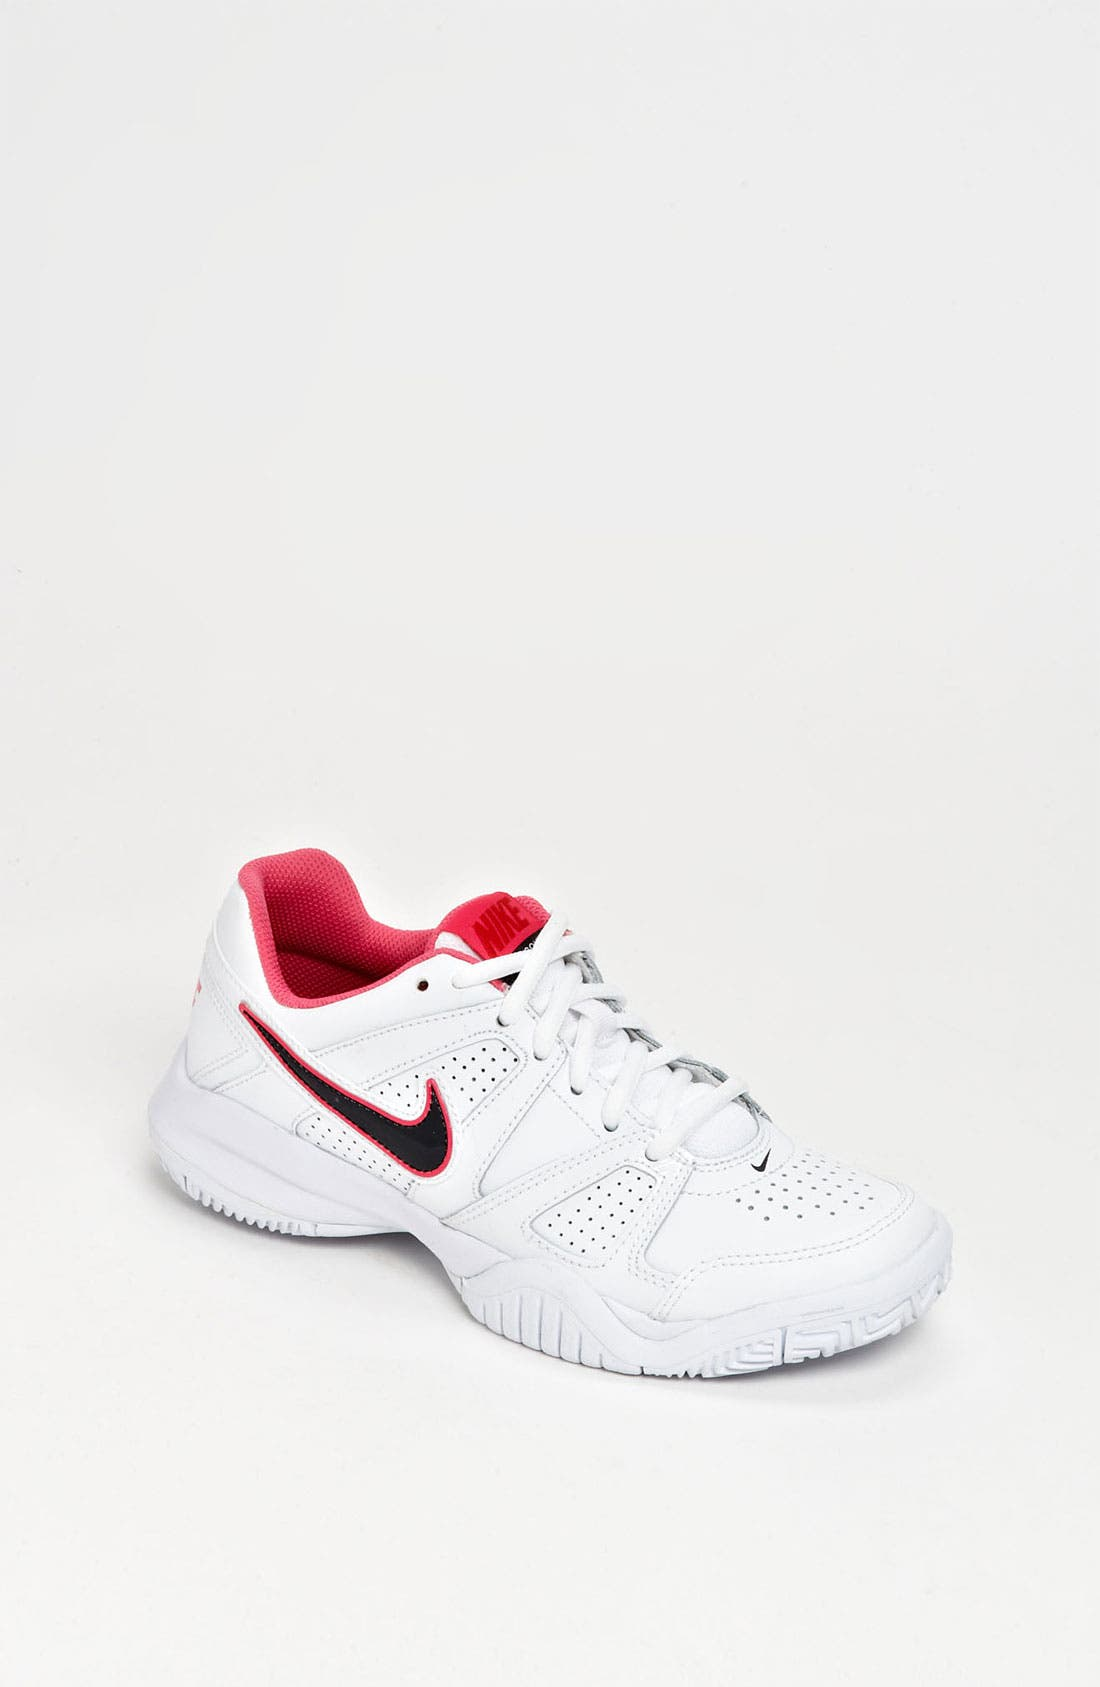 Main Image - Nike 'City Court 7' Tennis Shoe (Big Kid)